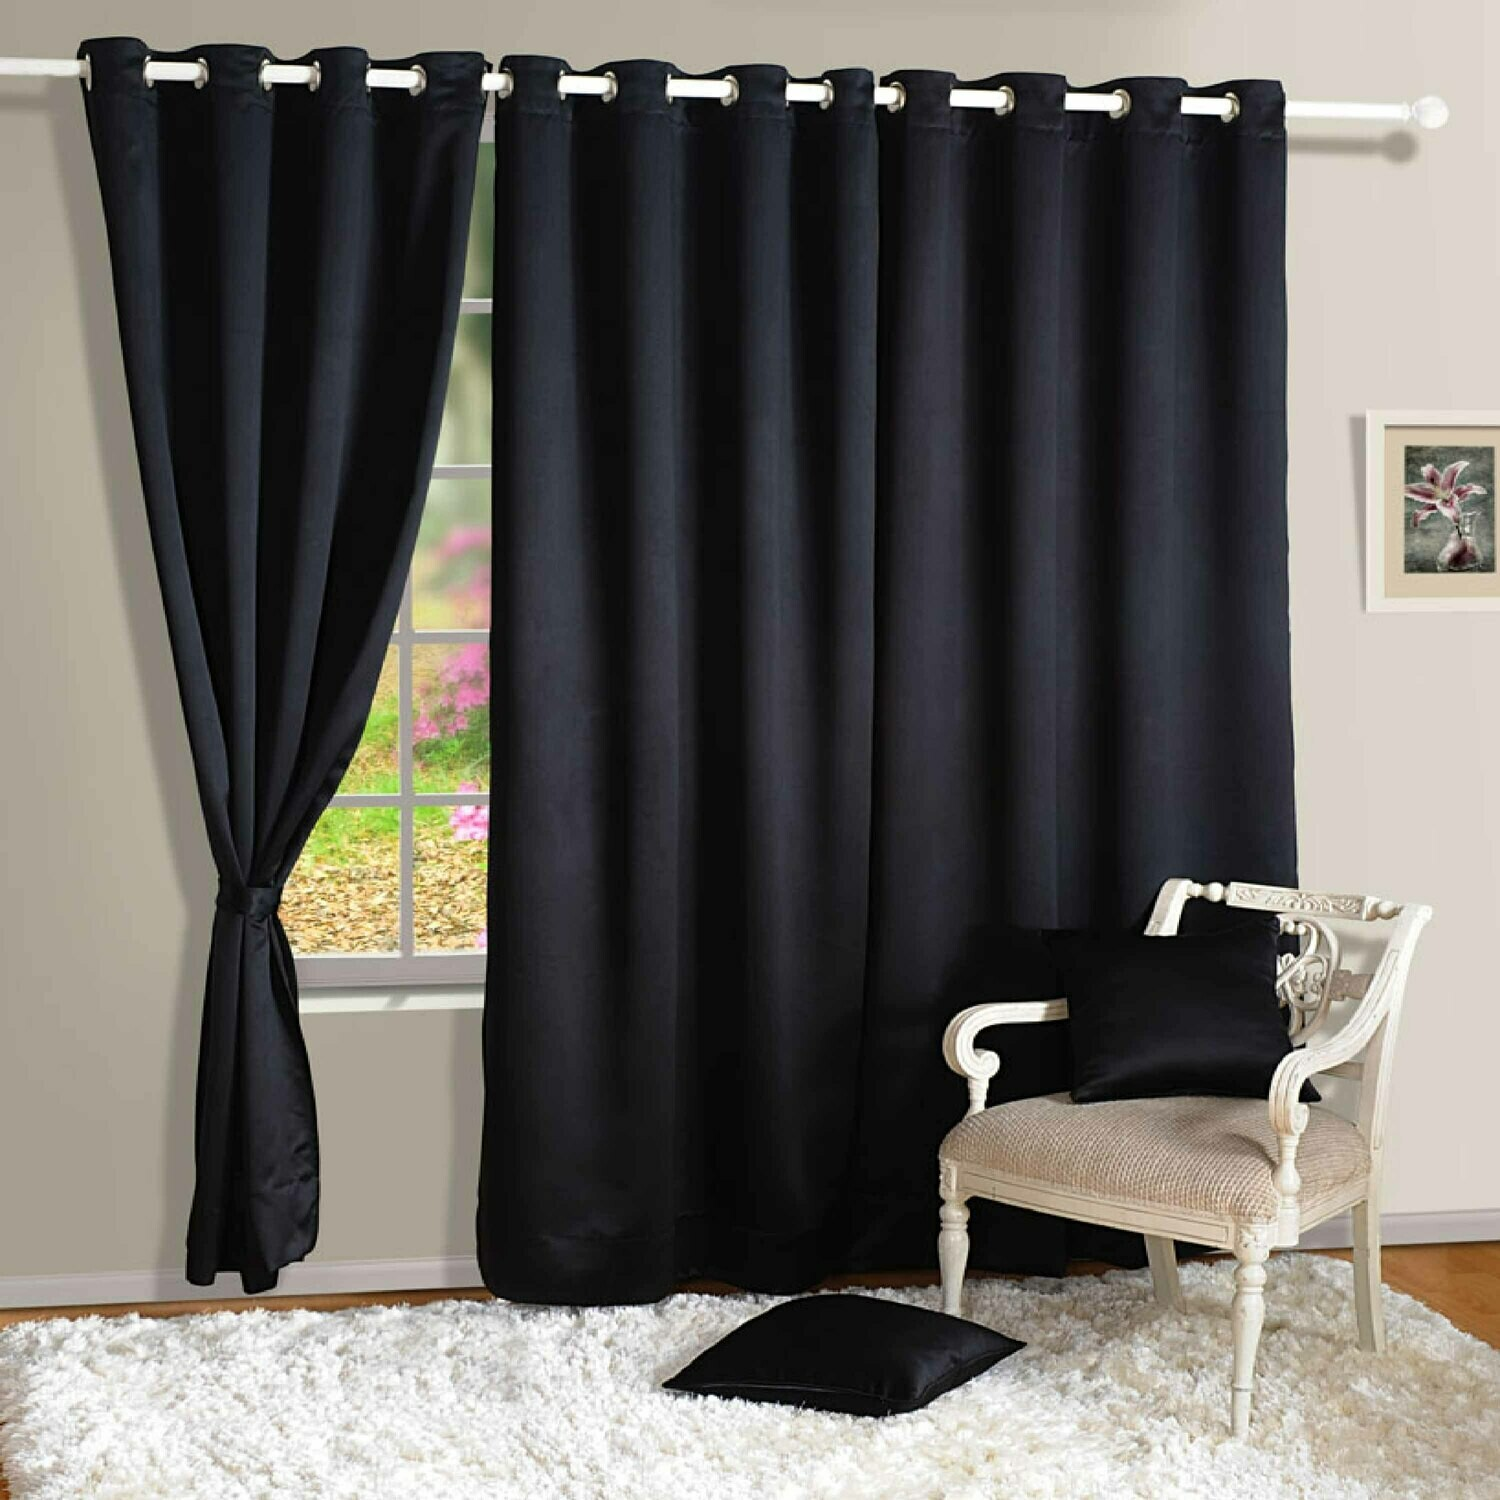 Swayam Black Colour Solid Blackout Eyelet Curtain for Window